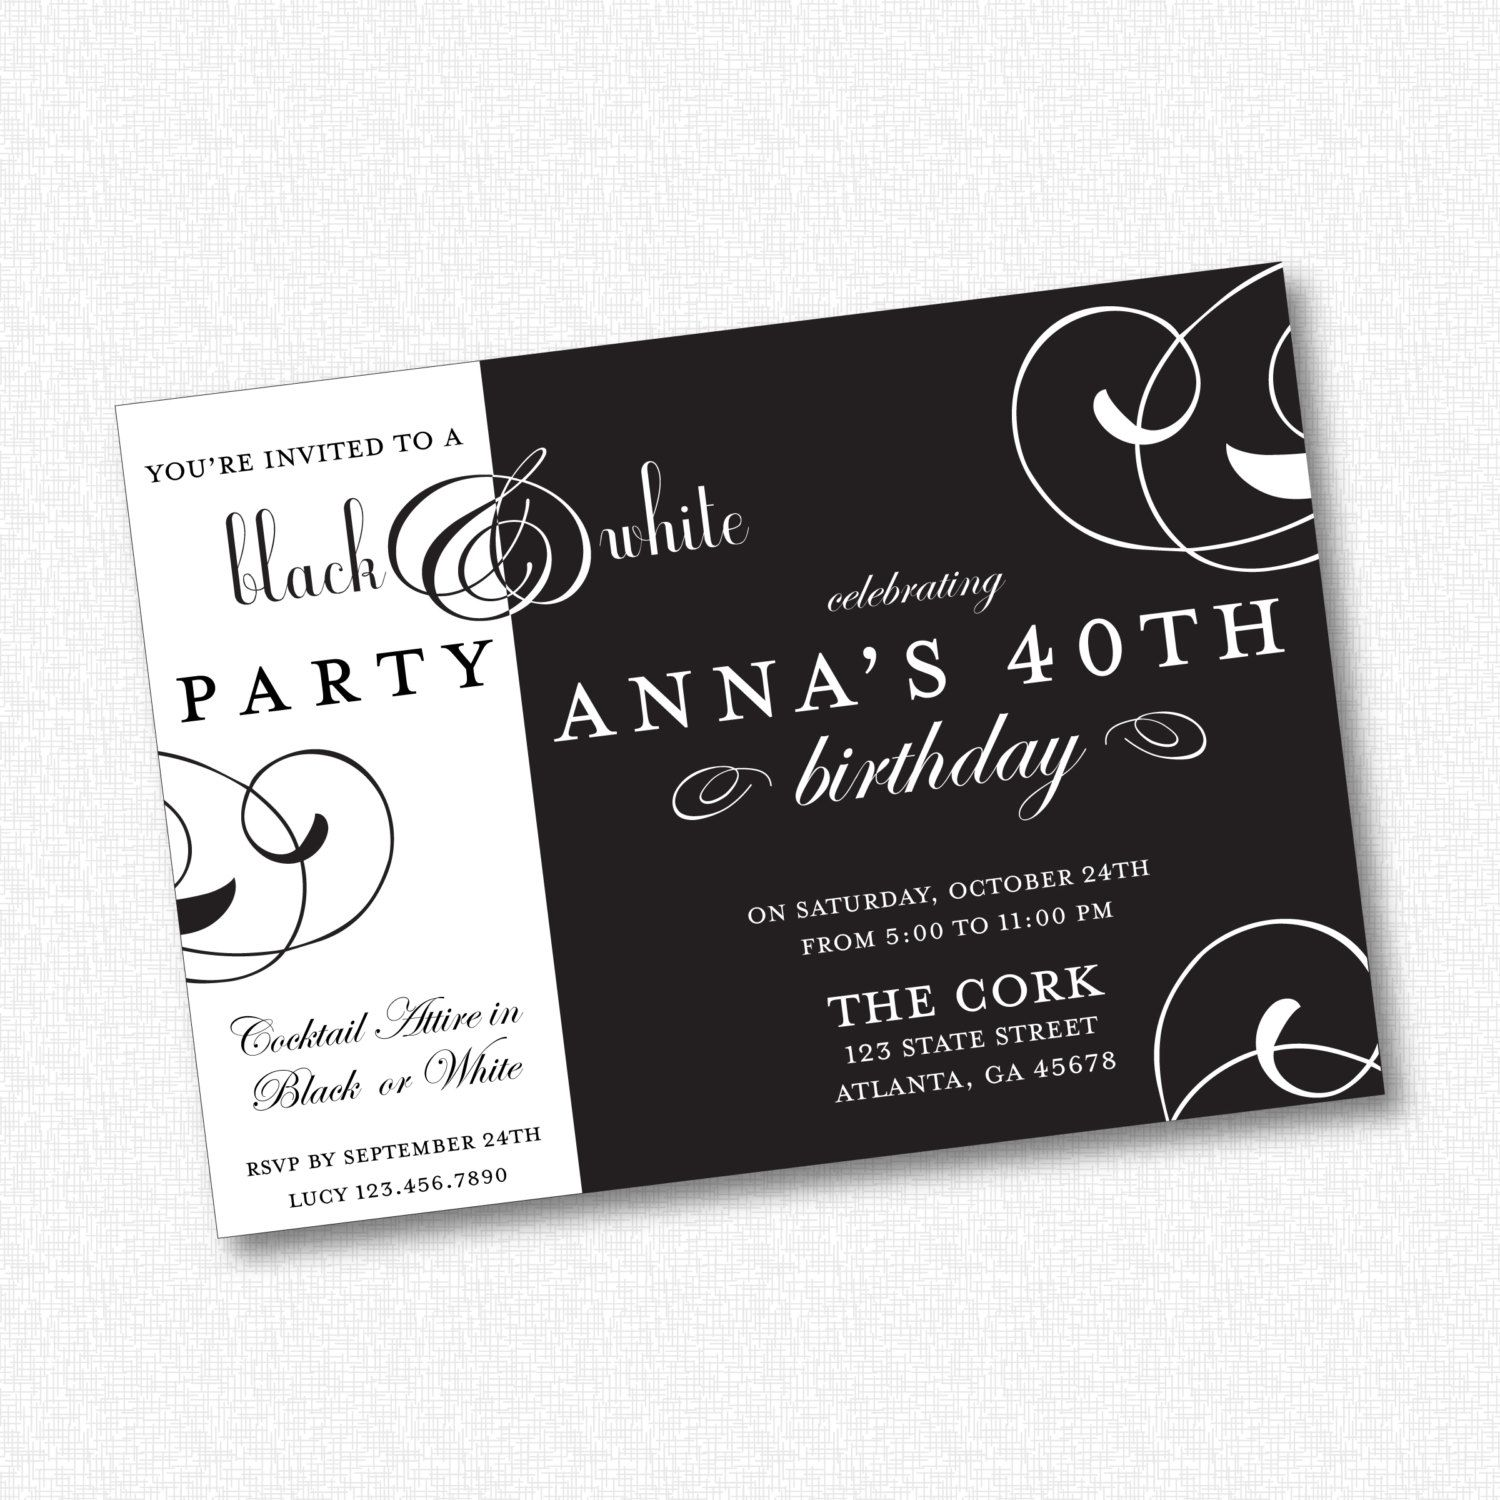 Black White Party Invitation PRINTABLE 21301 By Idconsultdesign 1400